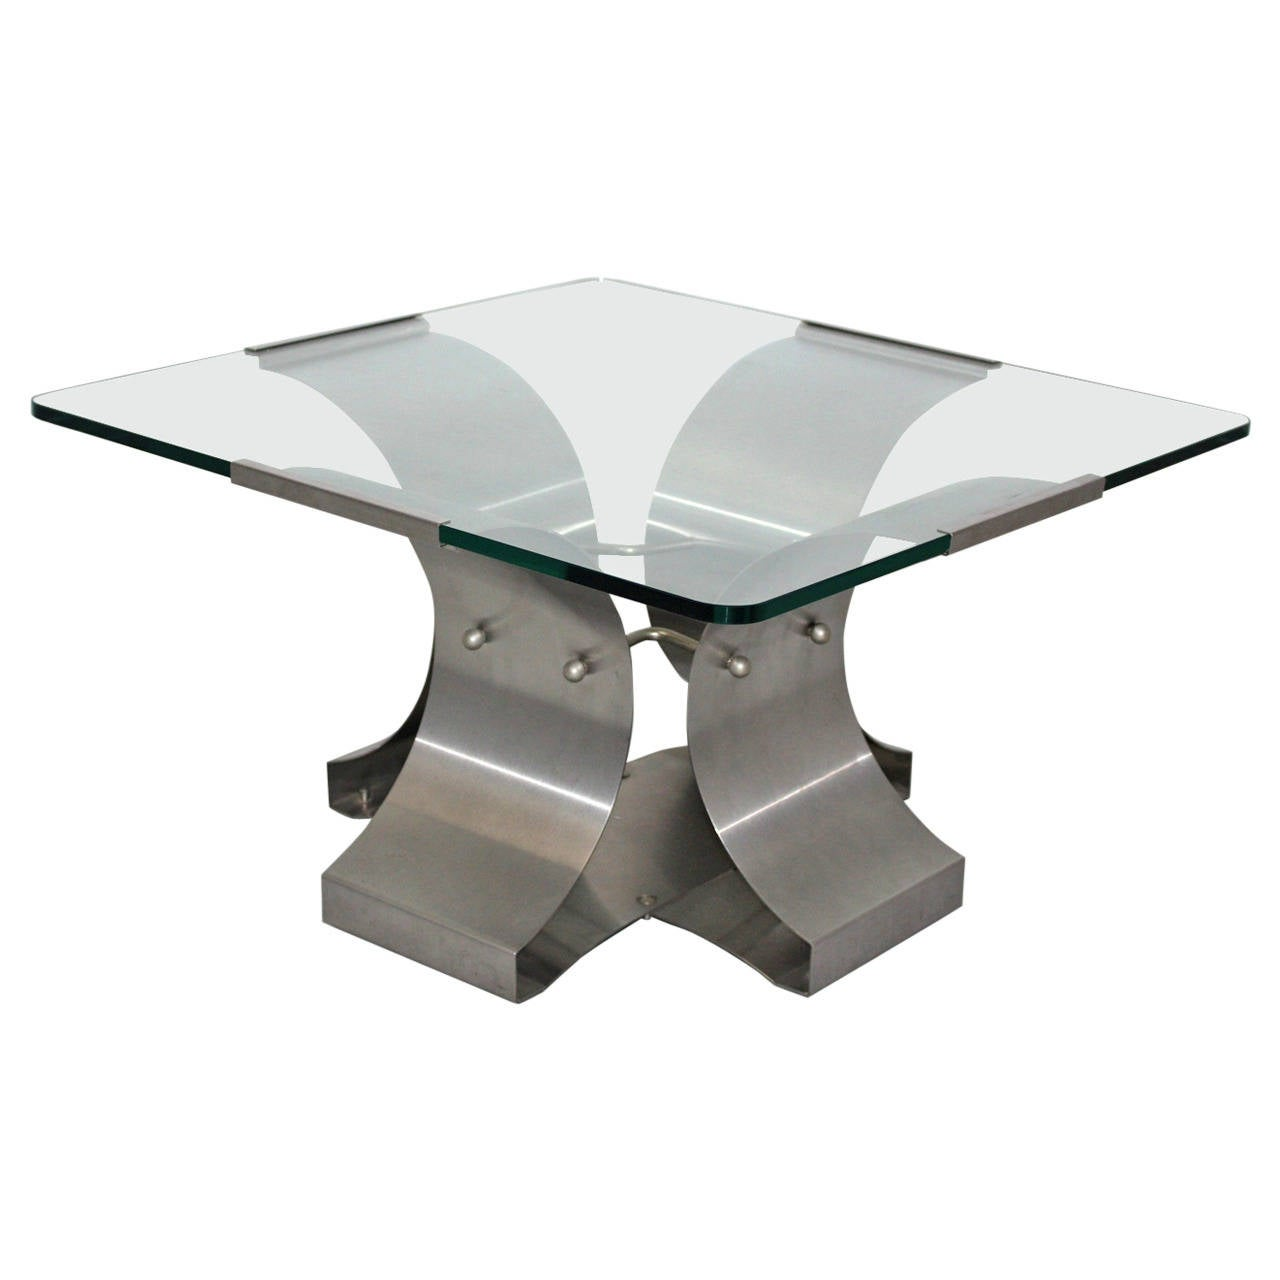 Stainless Steel Coffee Table by François Monnet, France, 1970s